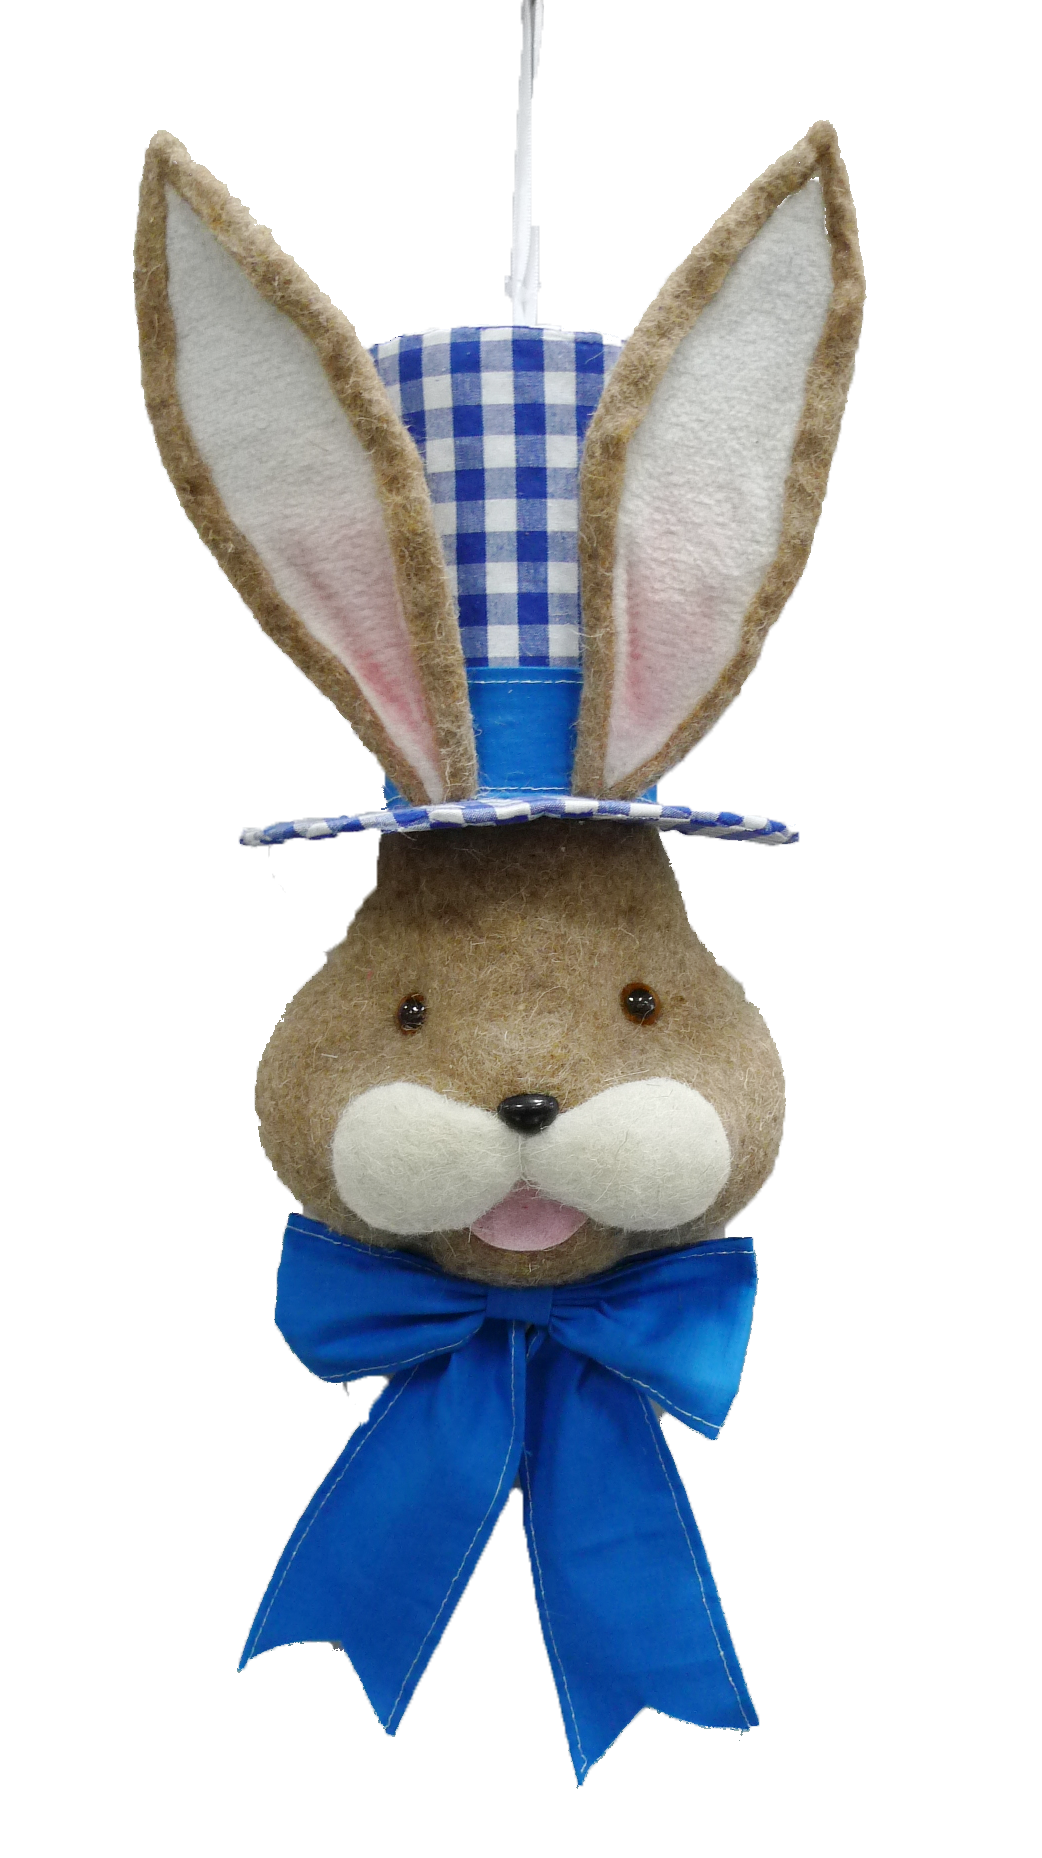 Bunny Top Hat D4xW8xH22 Blue